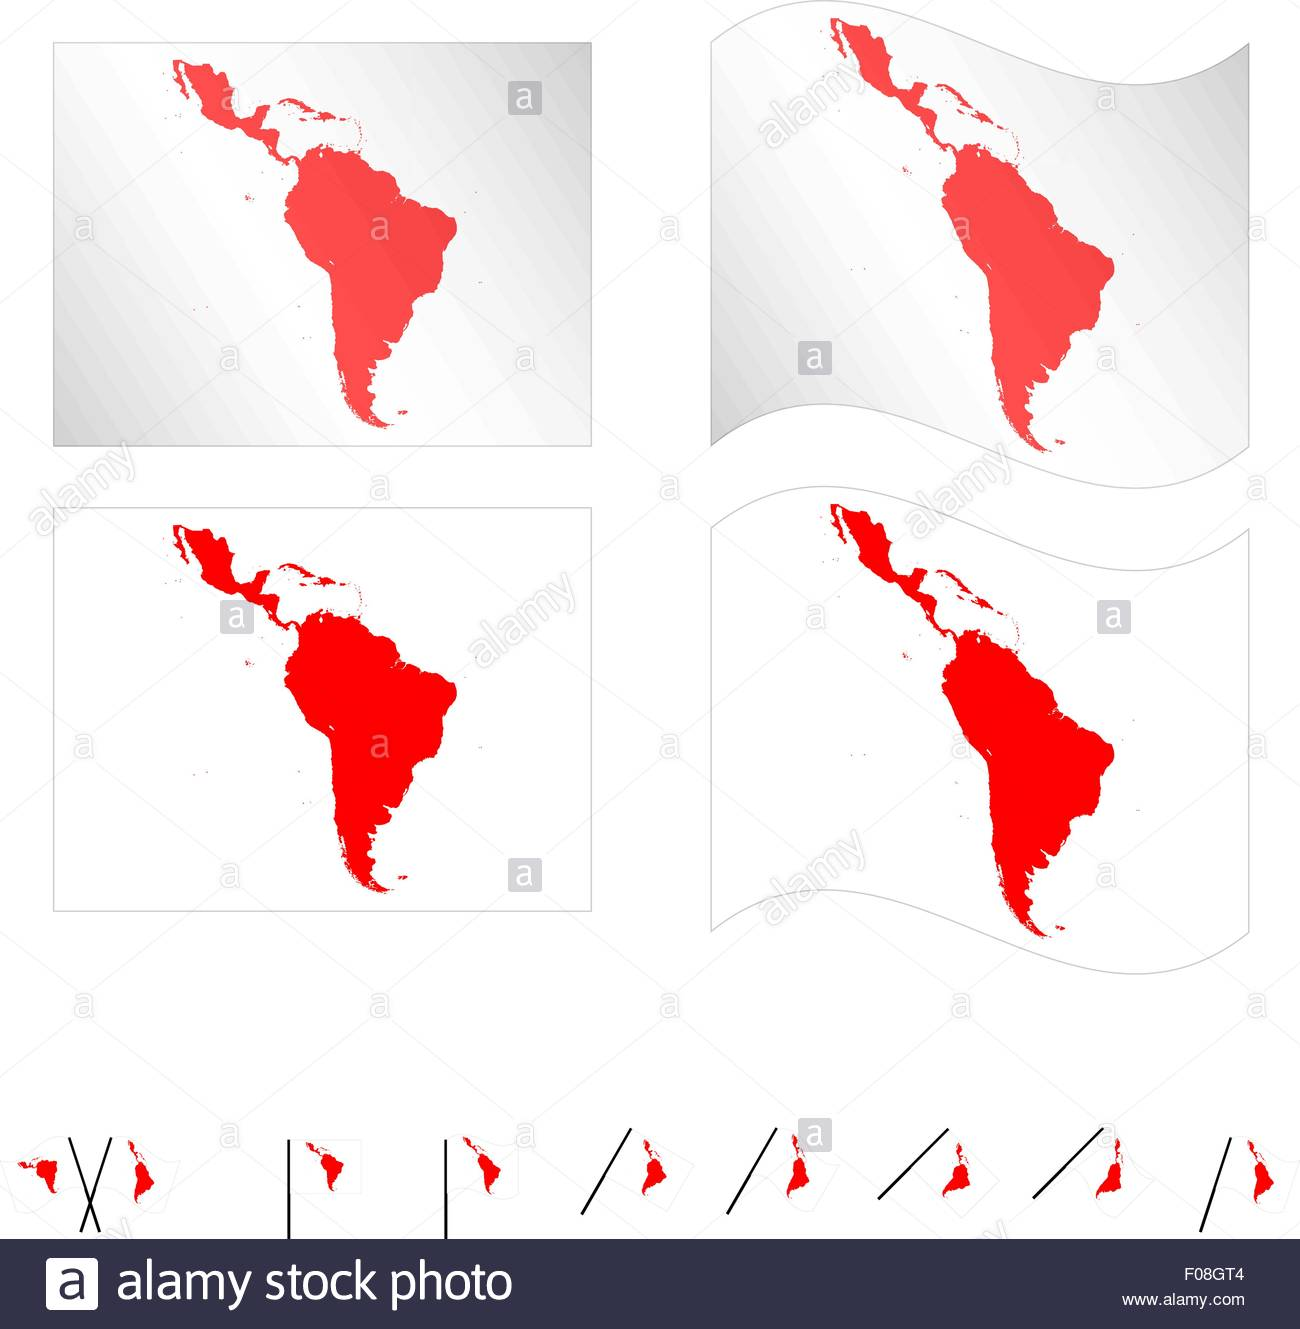 American Map Vector.Flags With Latin American Map Eps 10 Stock Vector Art Illustration